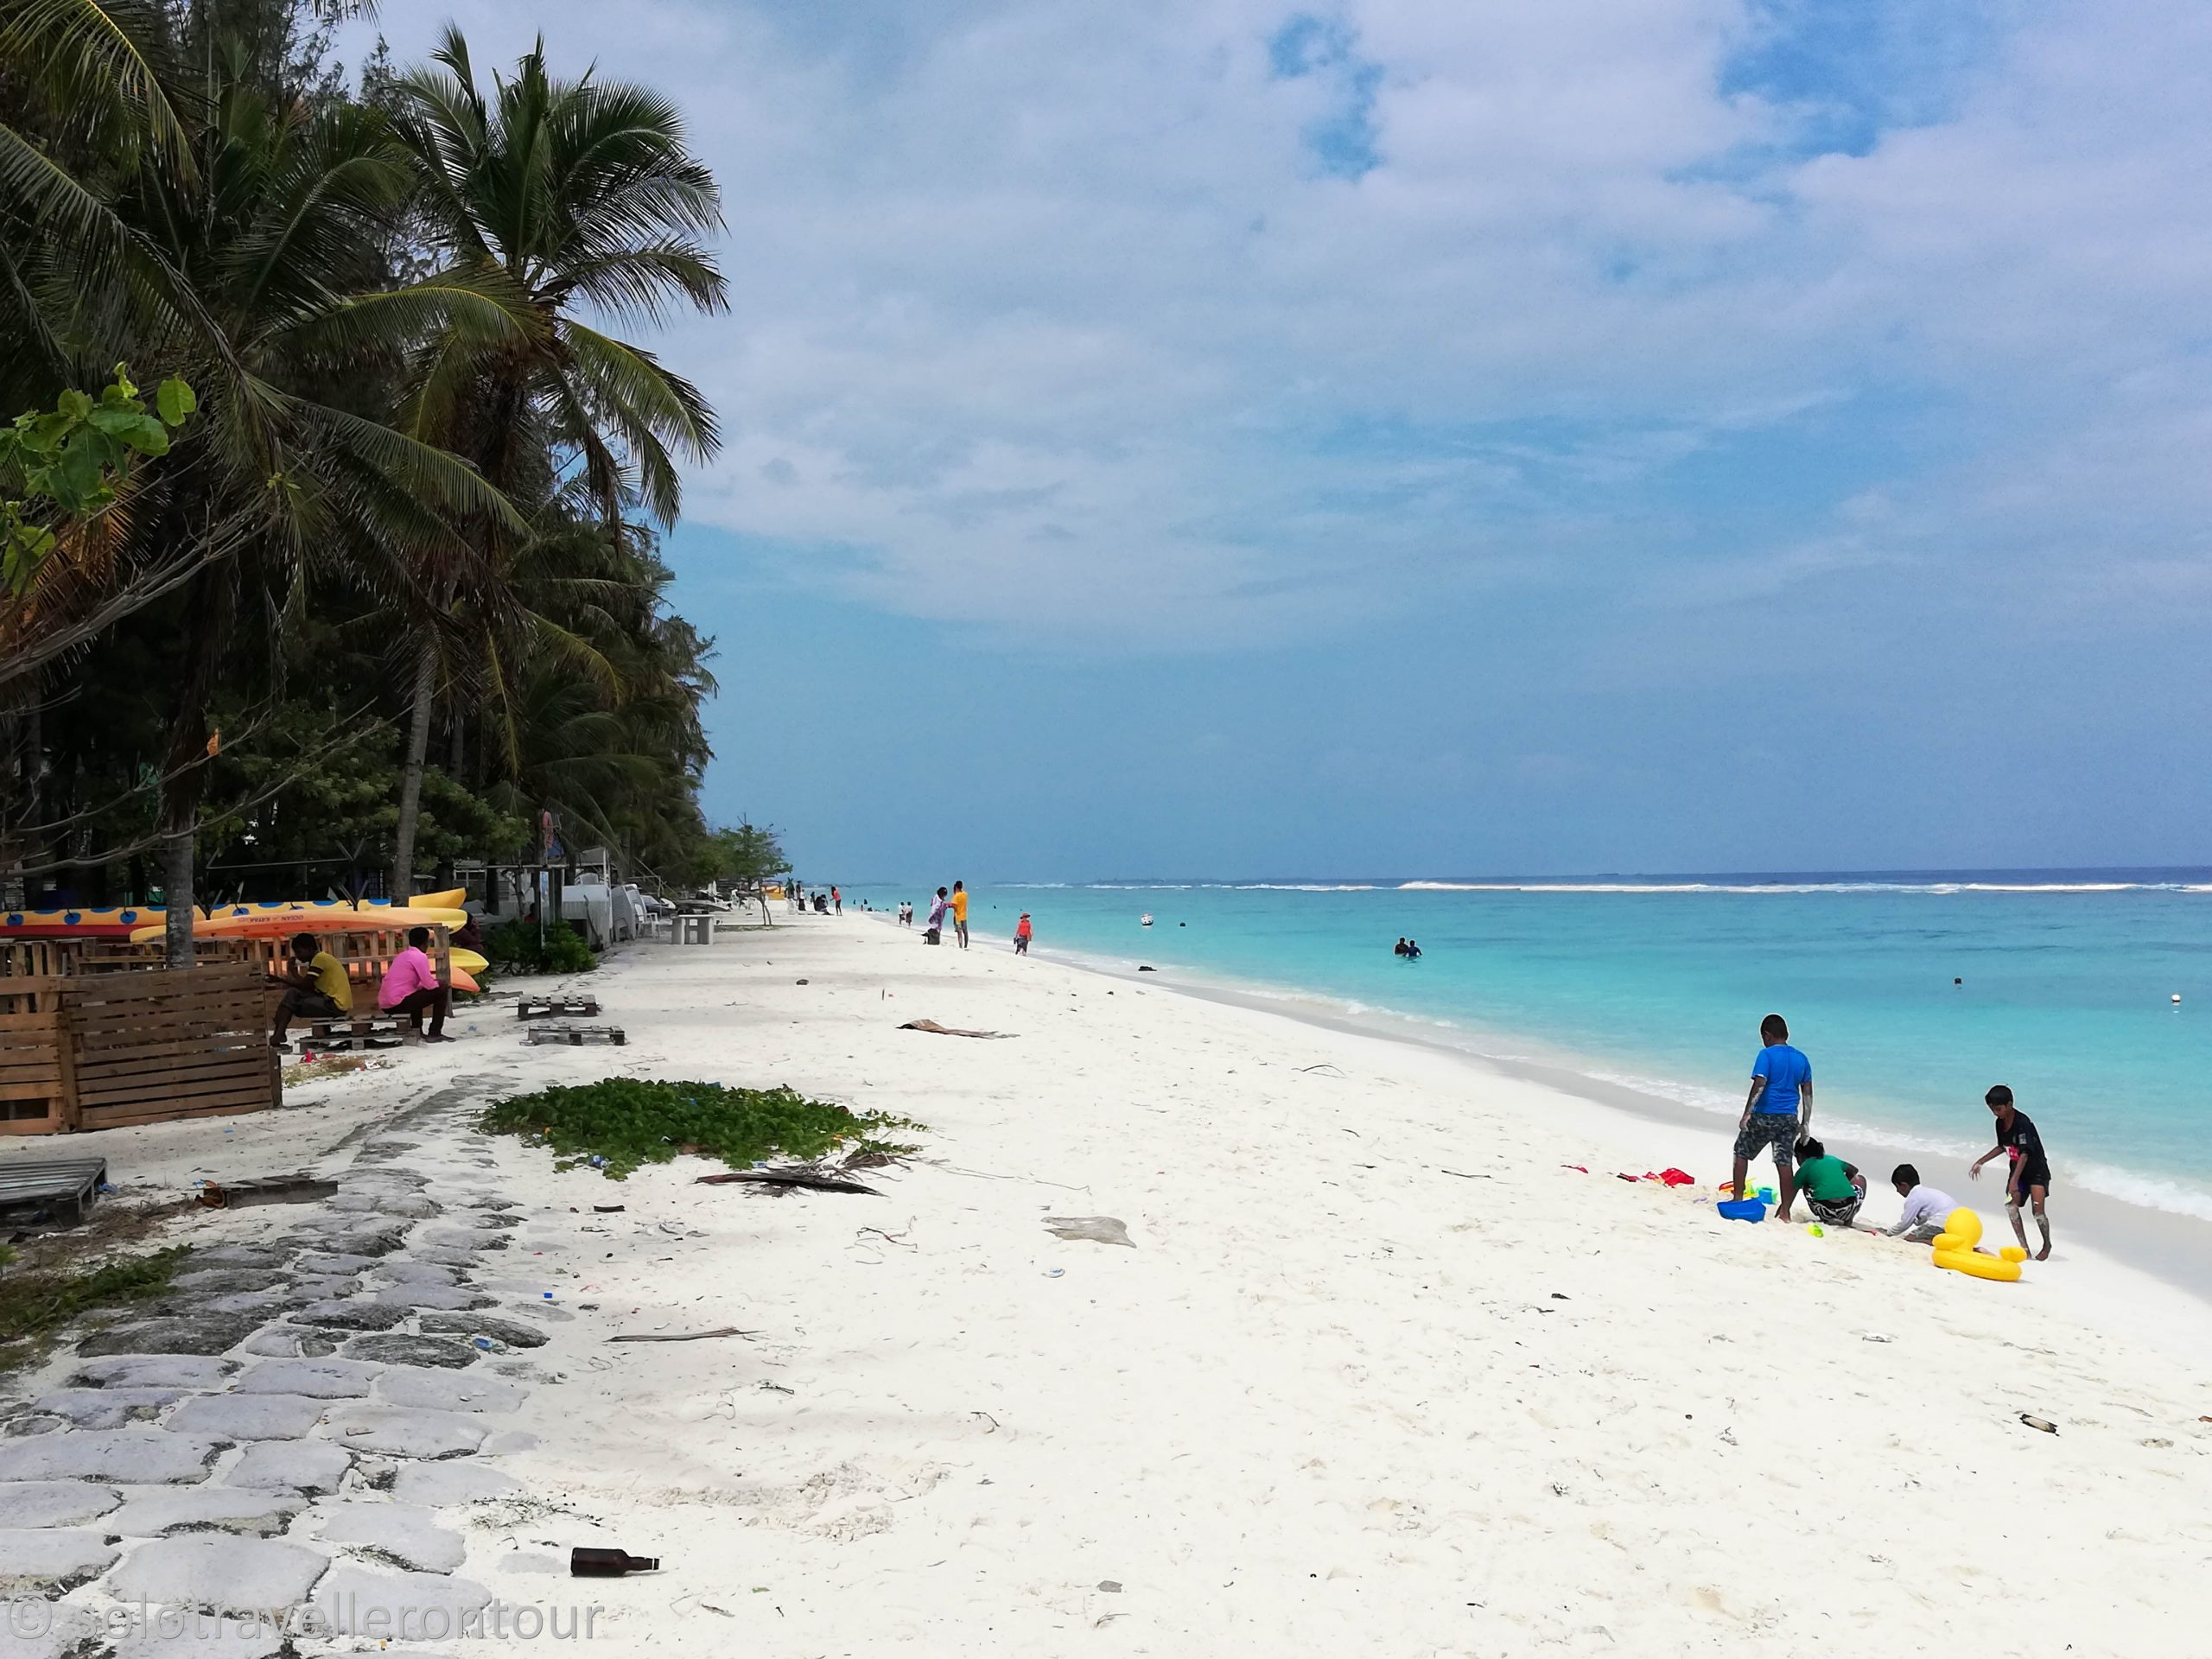 The Maldives I – A troubled journey to paradise